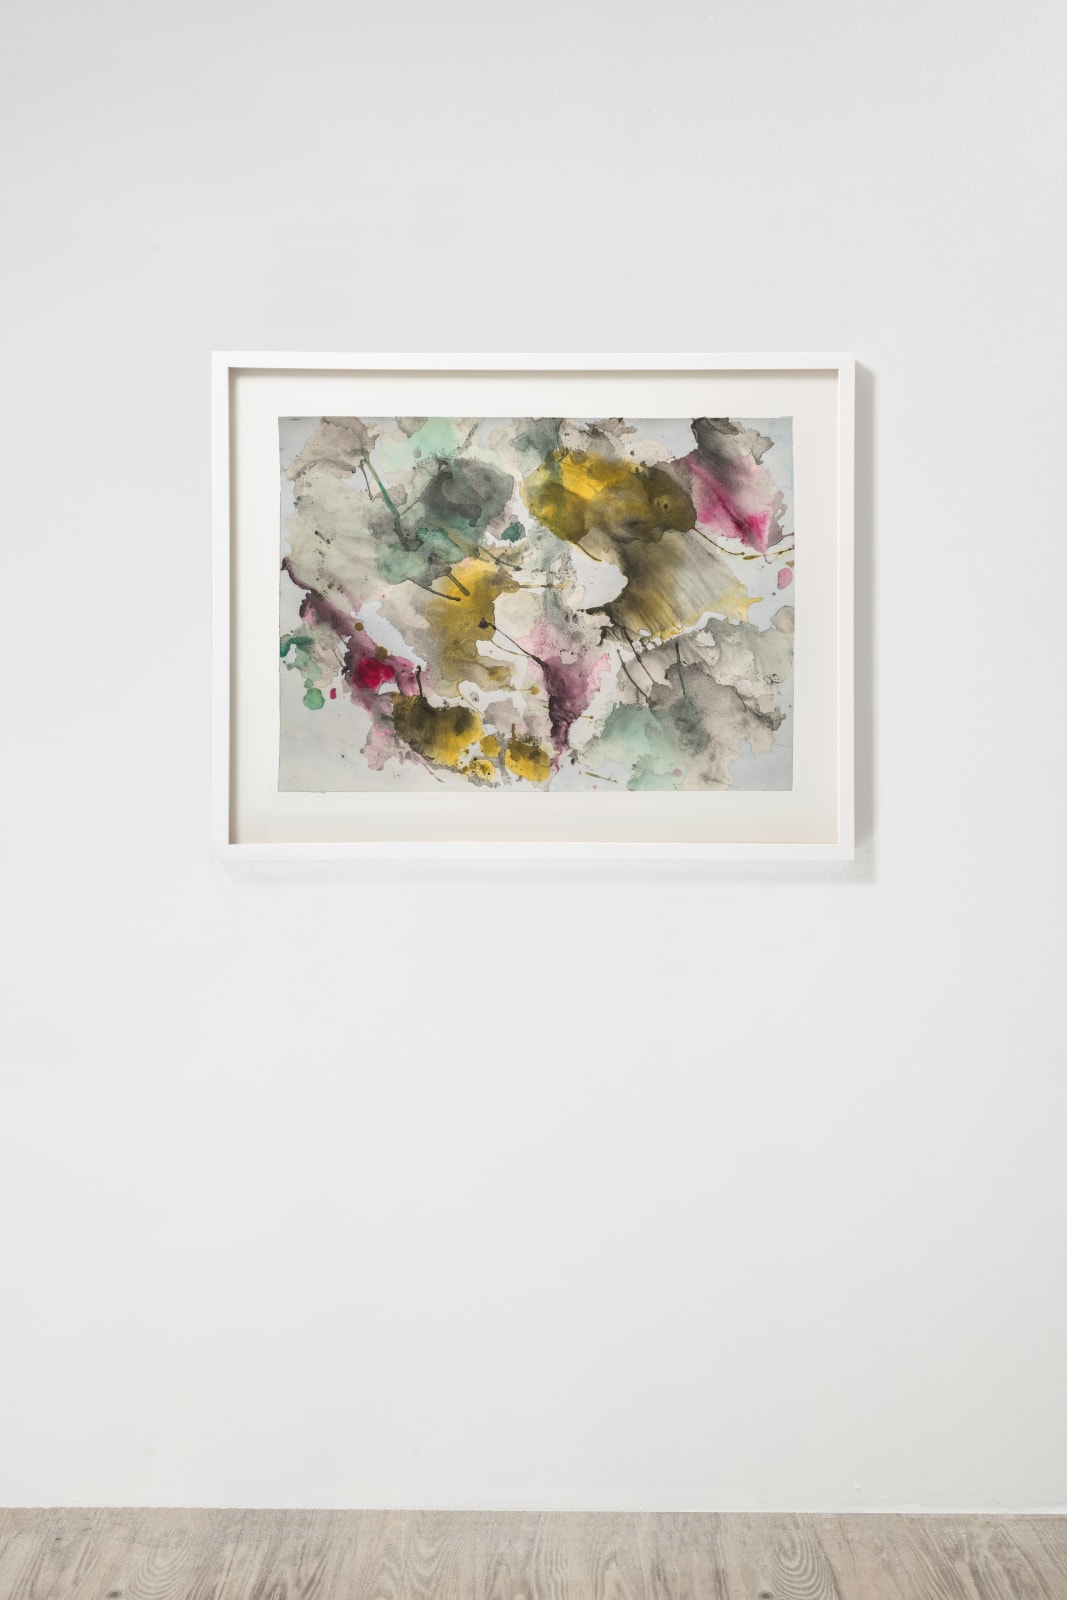 Michele Colburn Confrontation, 2020, Gunpowder and watercolors on Fabriano paper 55.9 x 76.2 cm, 22 x 30 in. (Frame not included) Photo: Lee Stalsworth